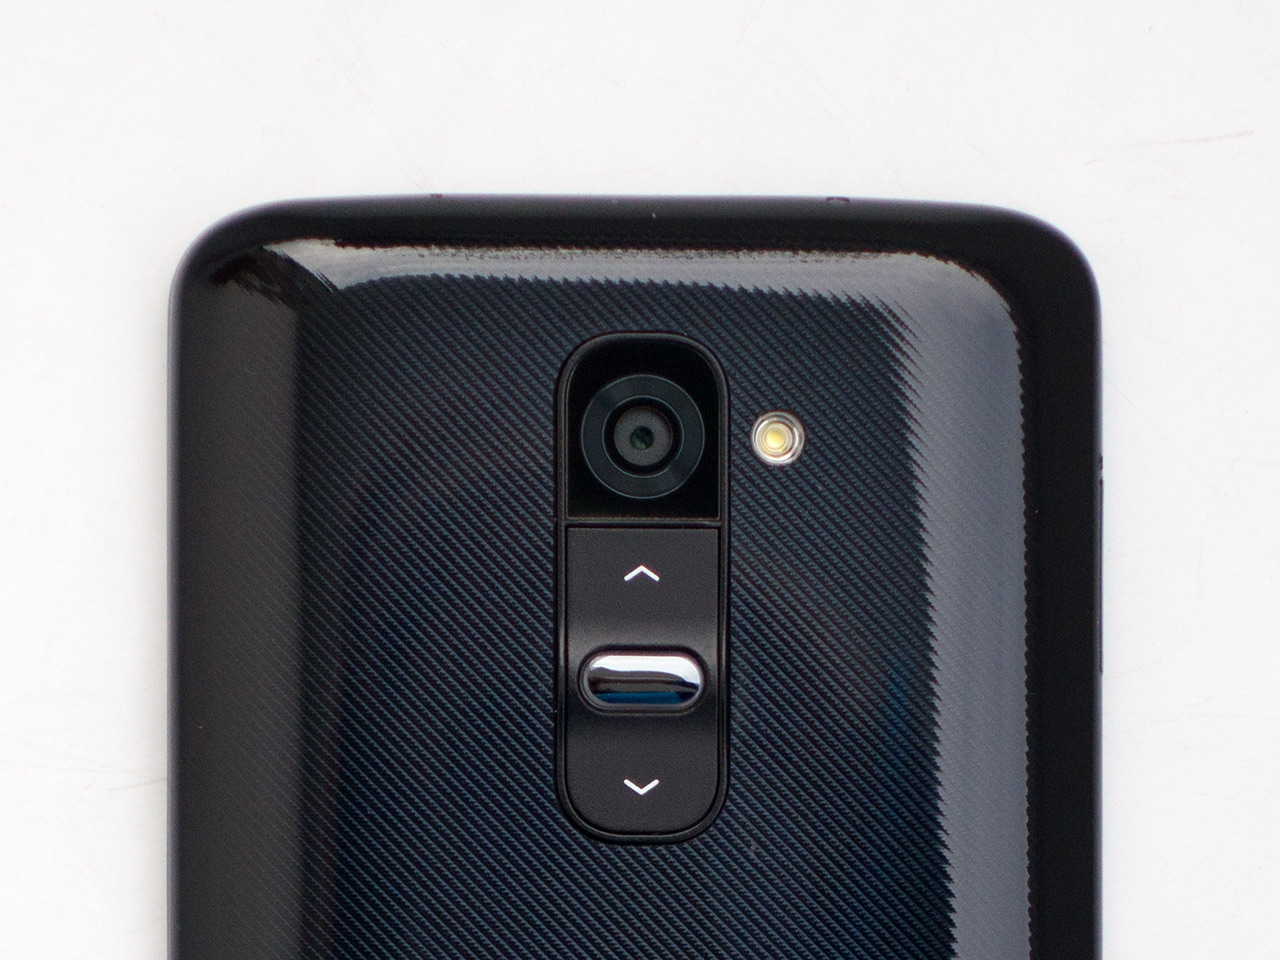 Camera Review Lgs G2 Smartphone Is First 13mp Android With Ois Lg D802 32gb White Free Flip Cover All Of The G2s Controls Power Button And Volume Rockers Can Be Found On Back Device Just Below Lens Buttons Also